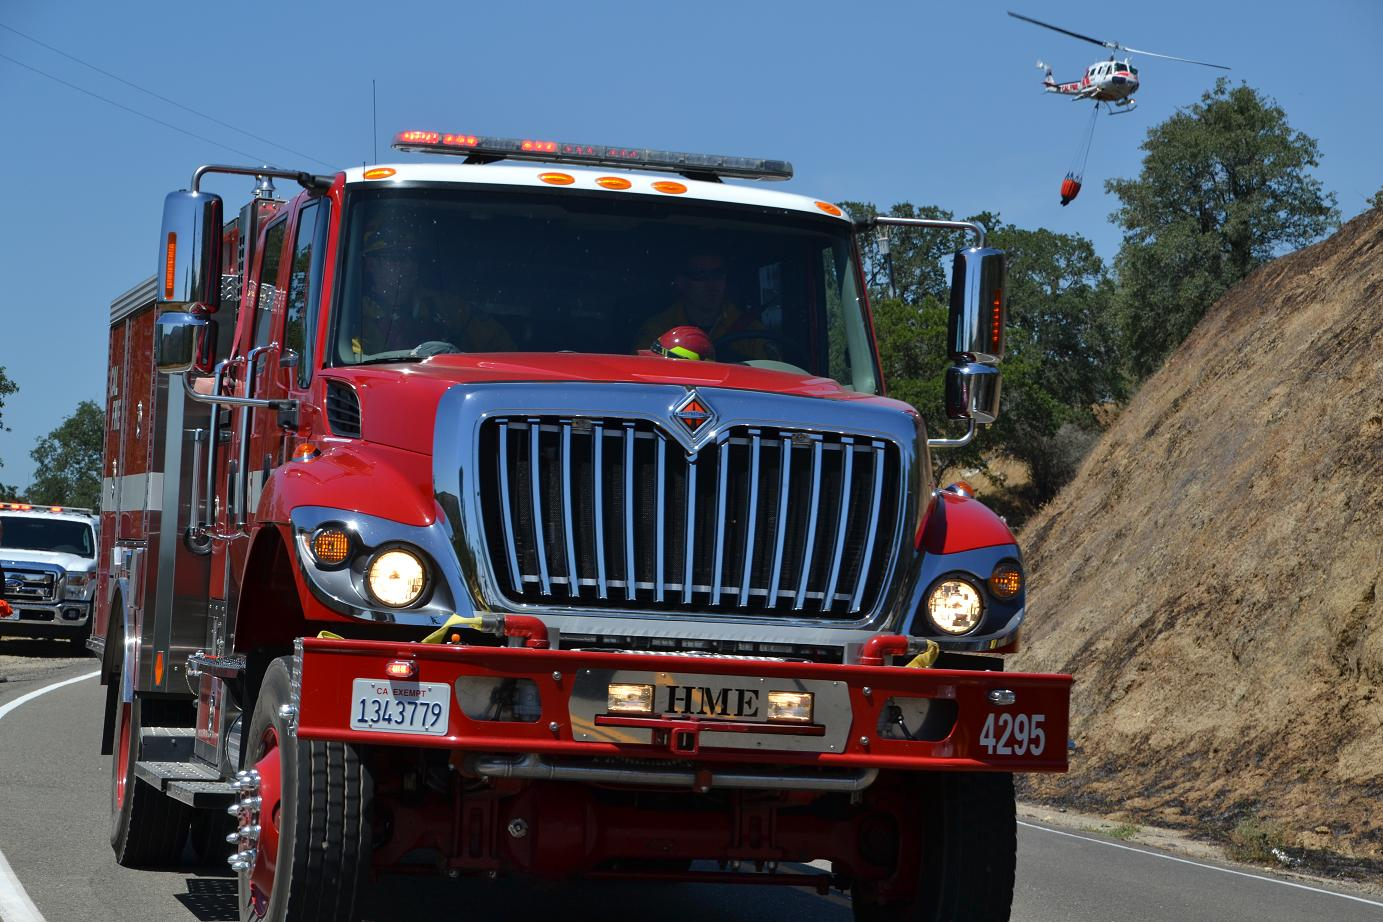 Engine 4295 and Cal Fire helicopter - photo by Gina Clugston